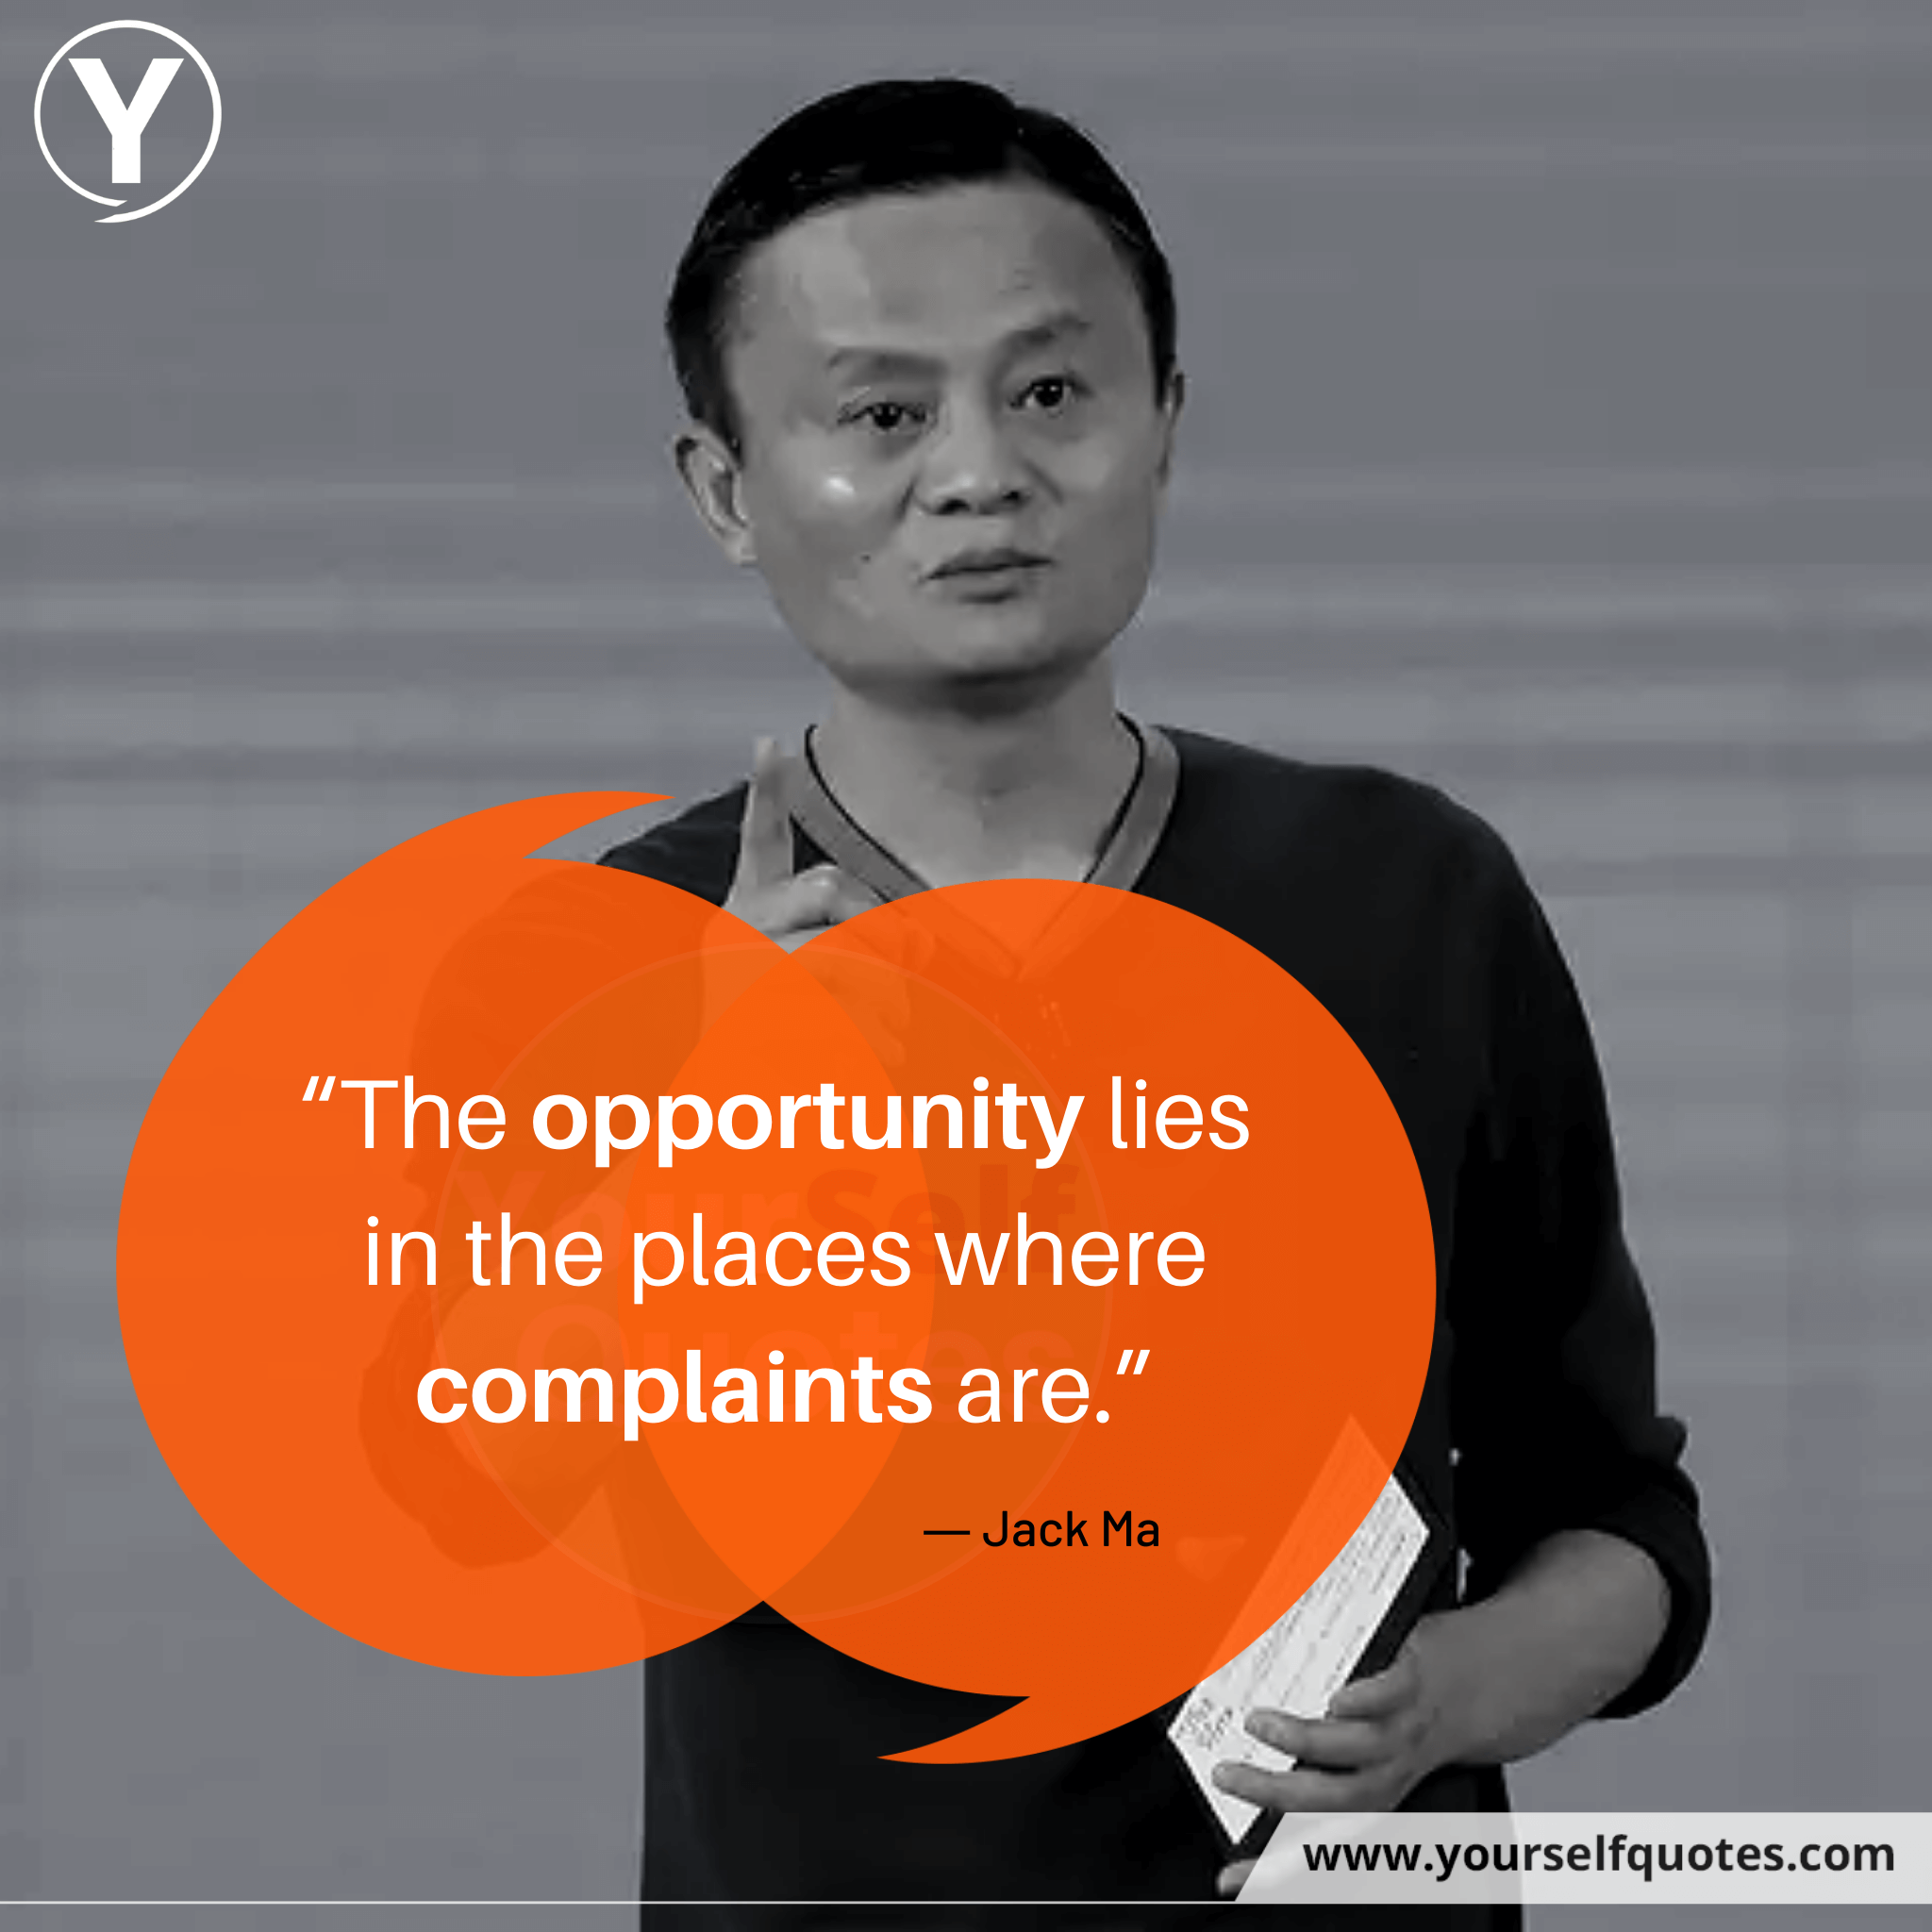 Jack Ma Opportunity Quotes